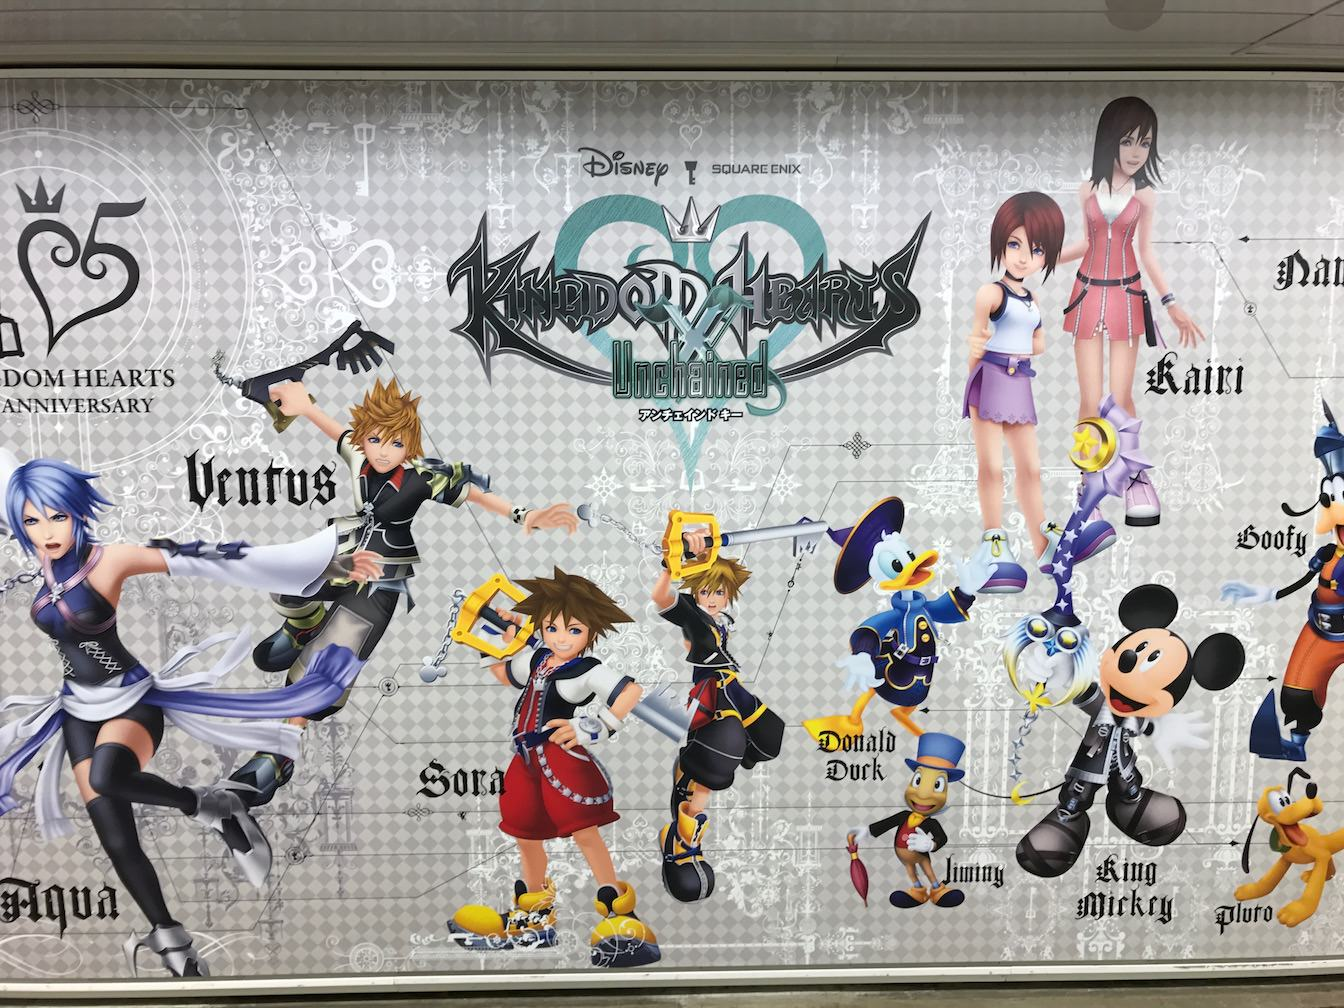 Kingdomhearts 15th anniversary exhibition at shinjuku 11